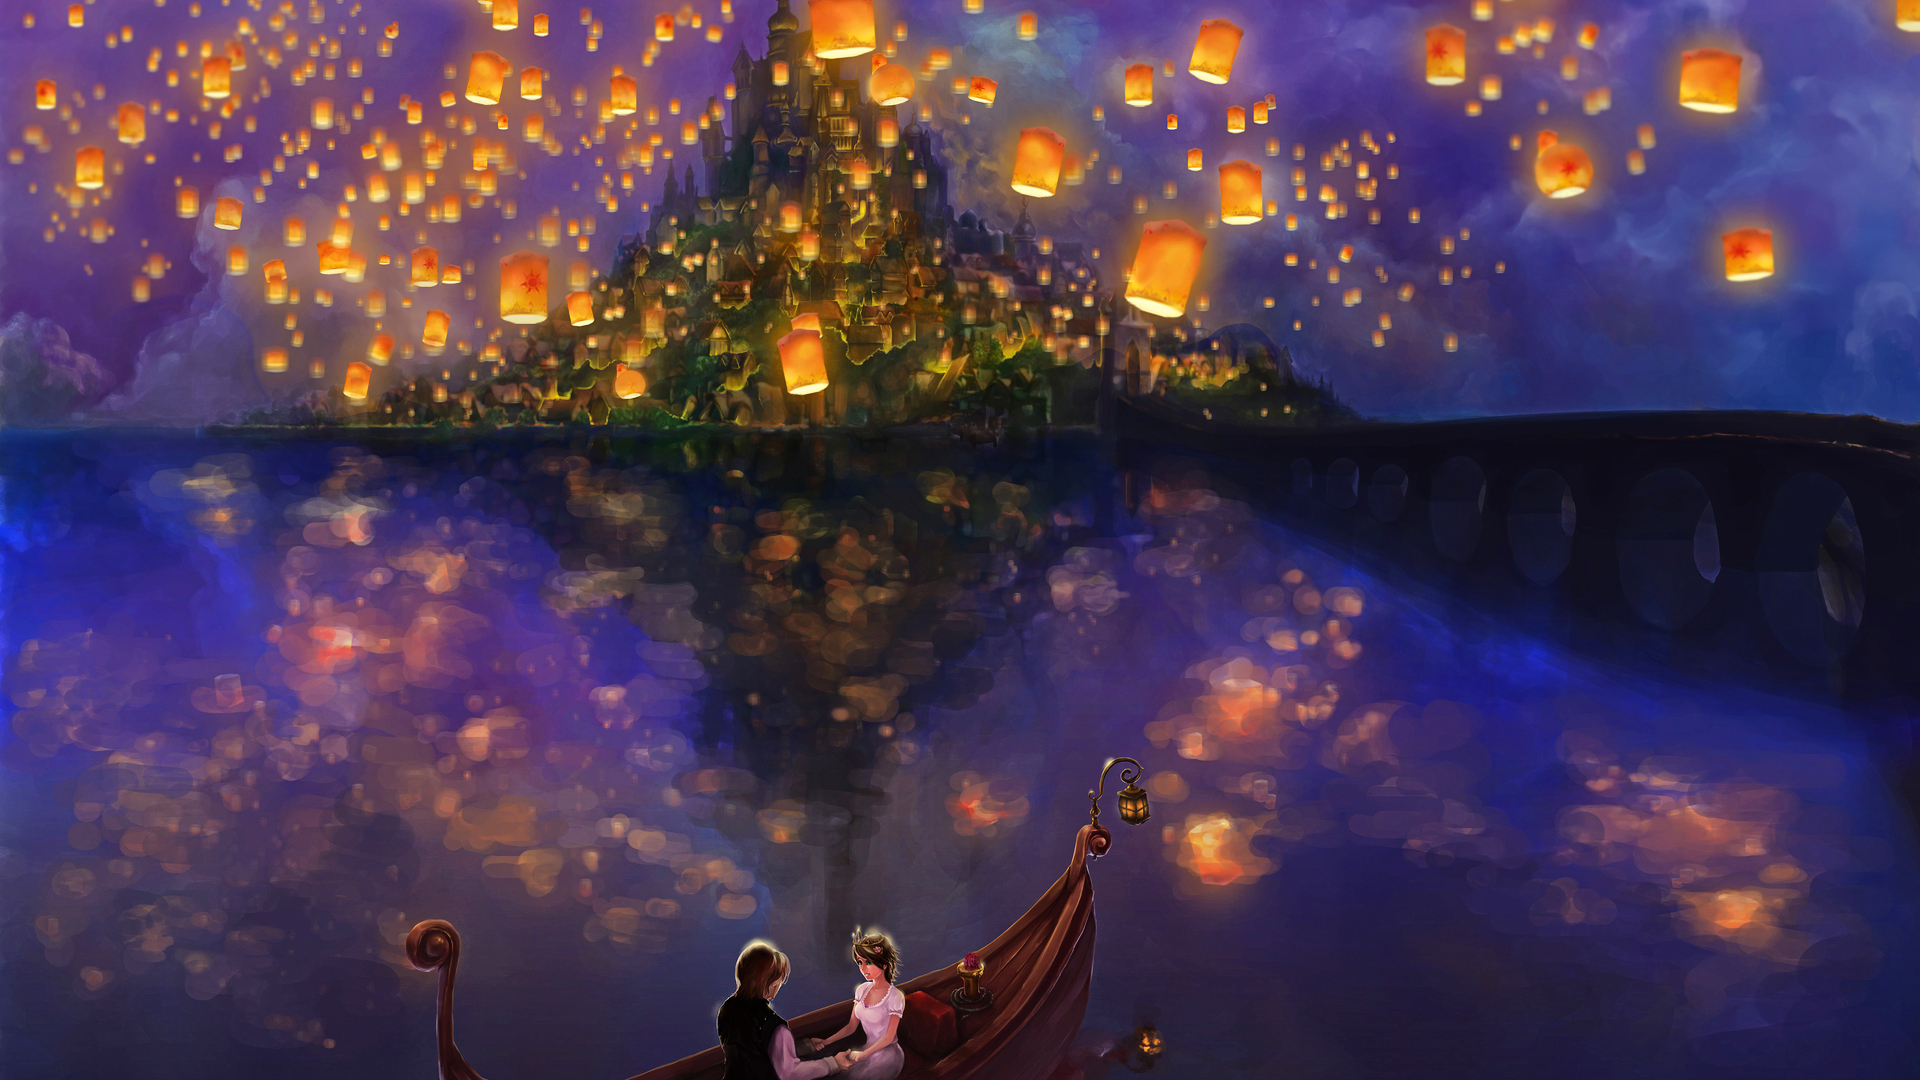 Free Fall Disney Wallpaper Free Desktop Spirited Away Wallpapers Pixelstalk Net